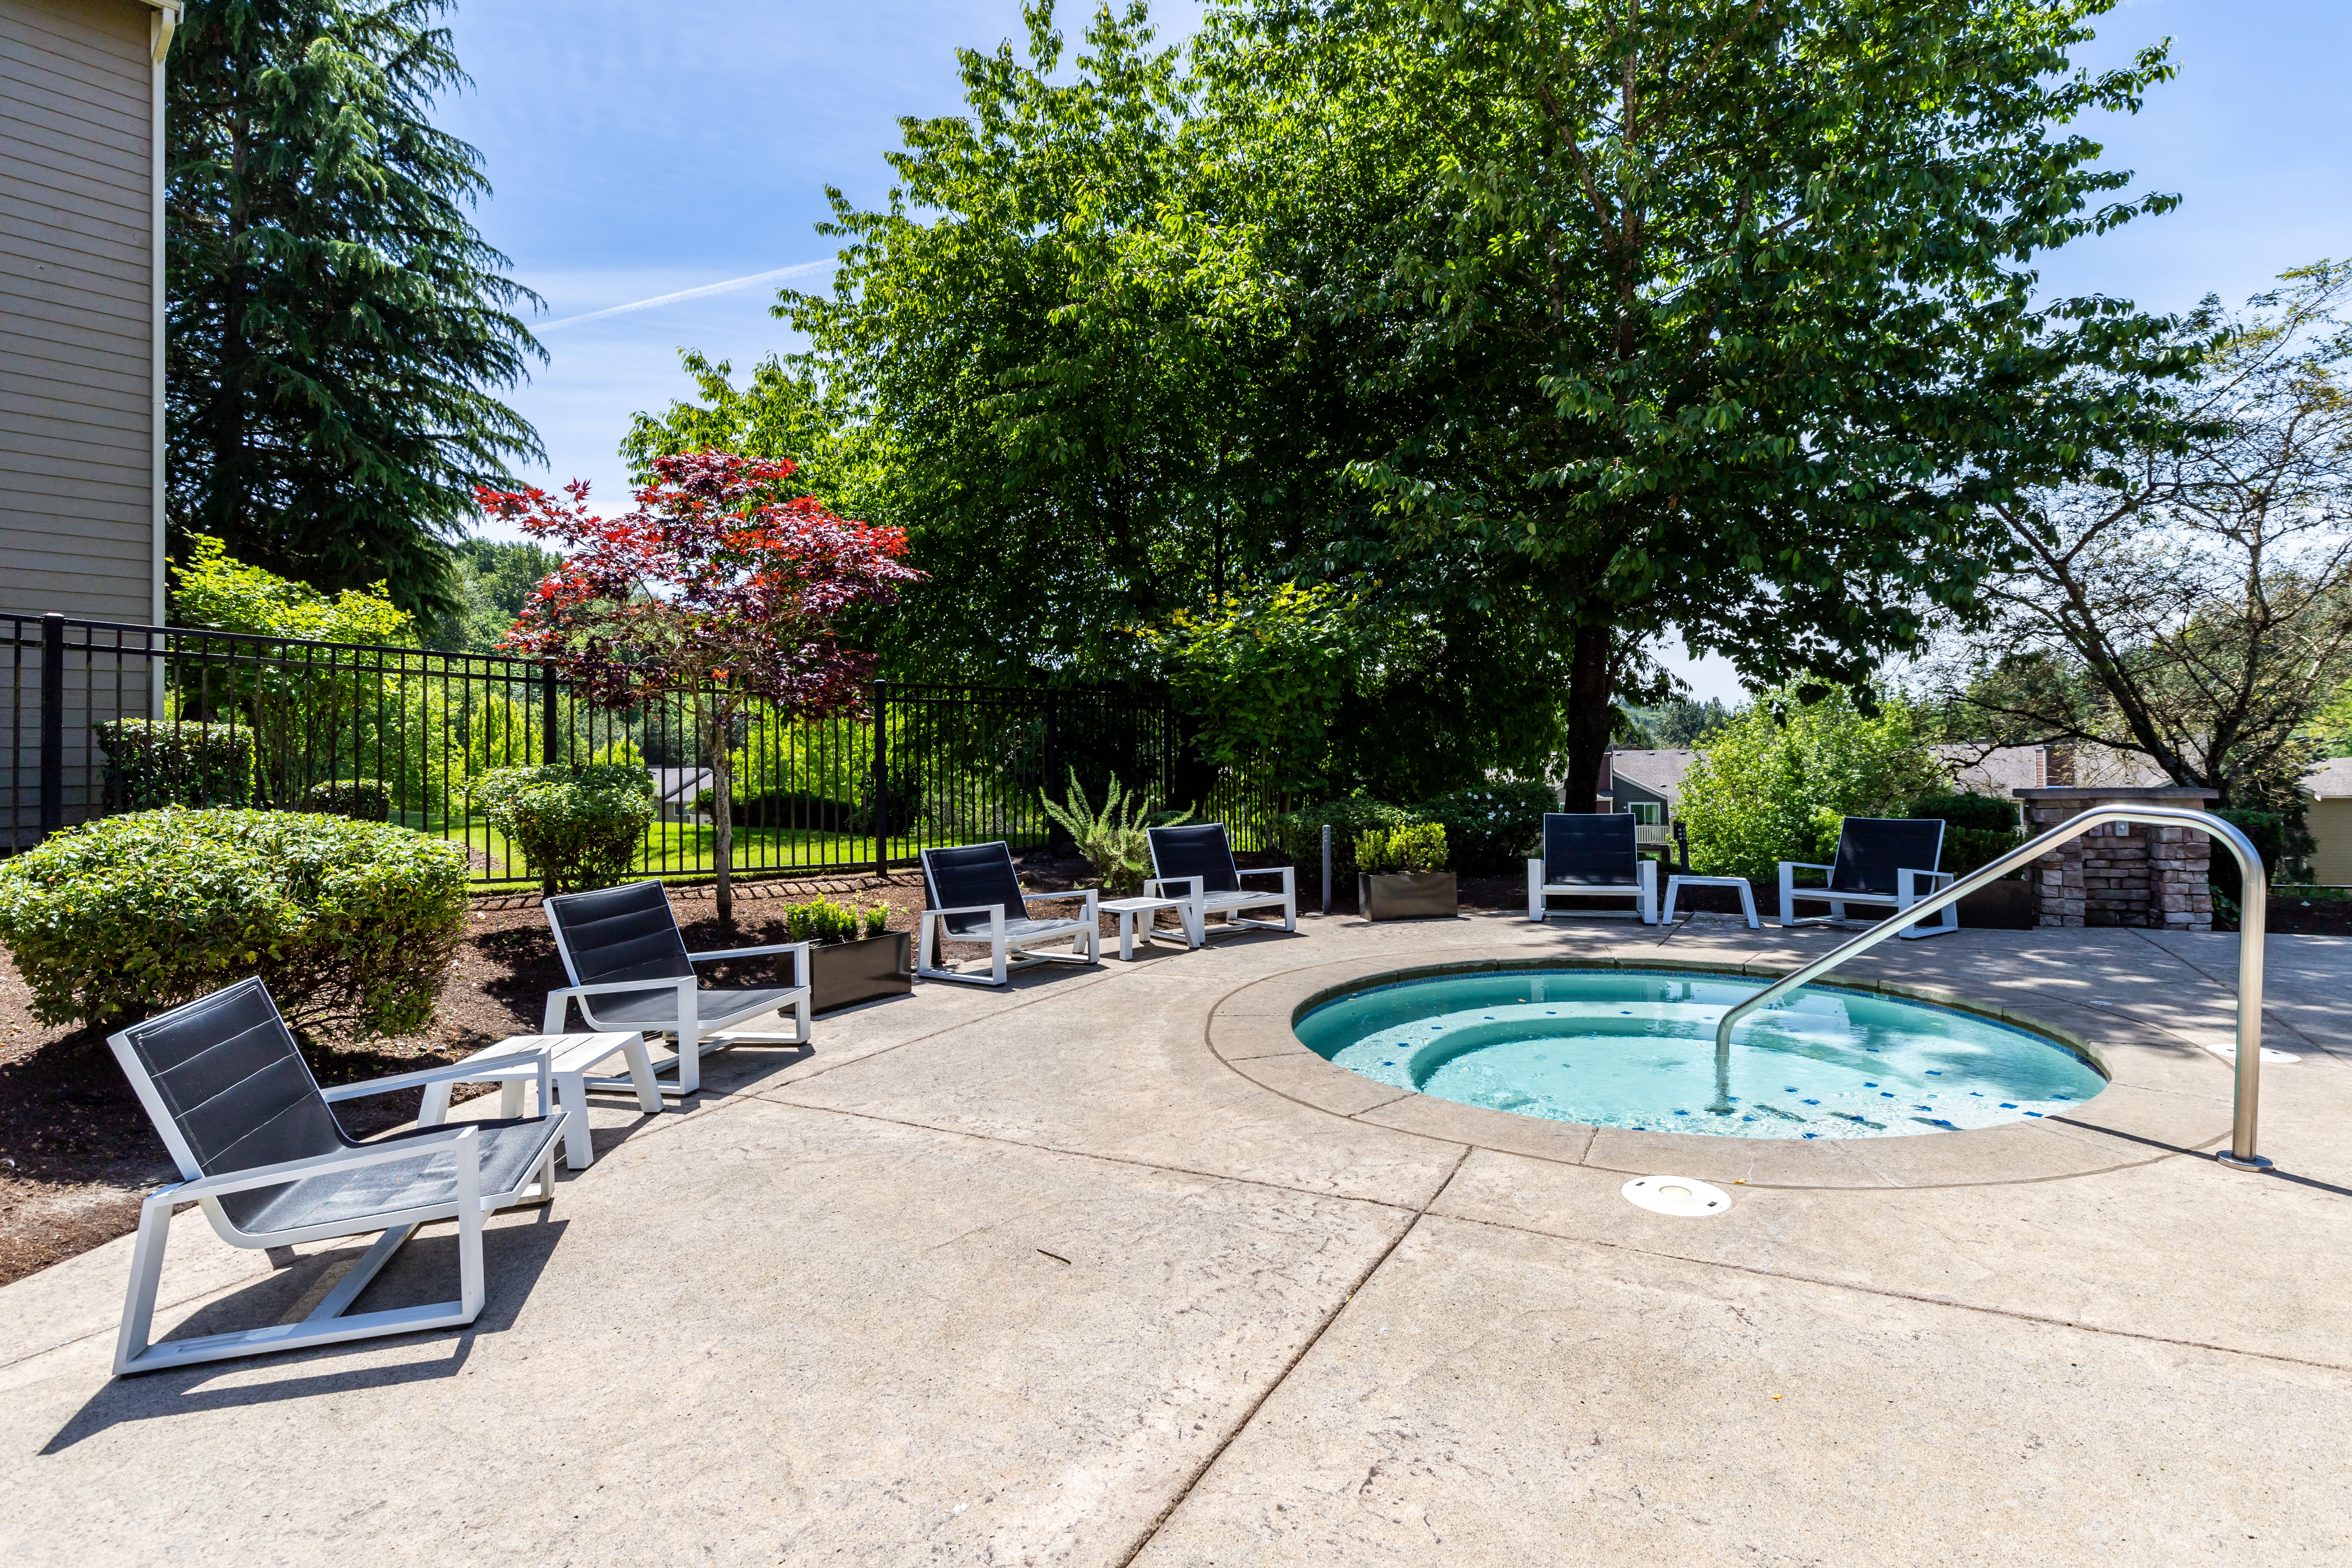 Hot tub by the pool at The Preserve at Forbes Creek in Kirkland, Washington